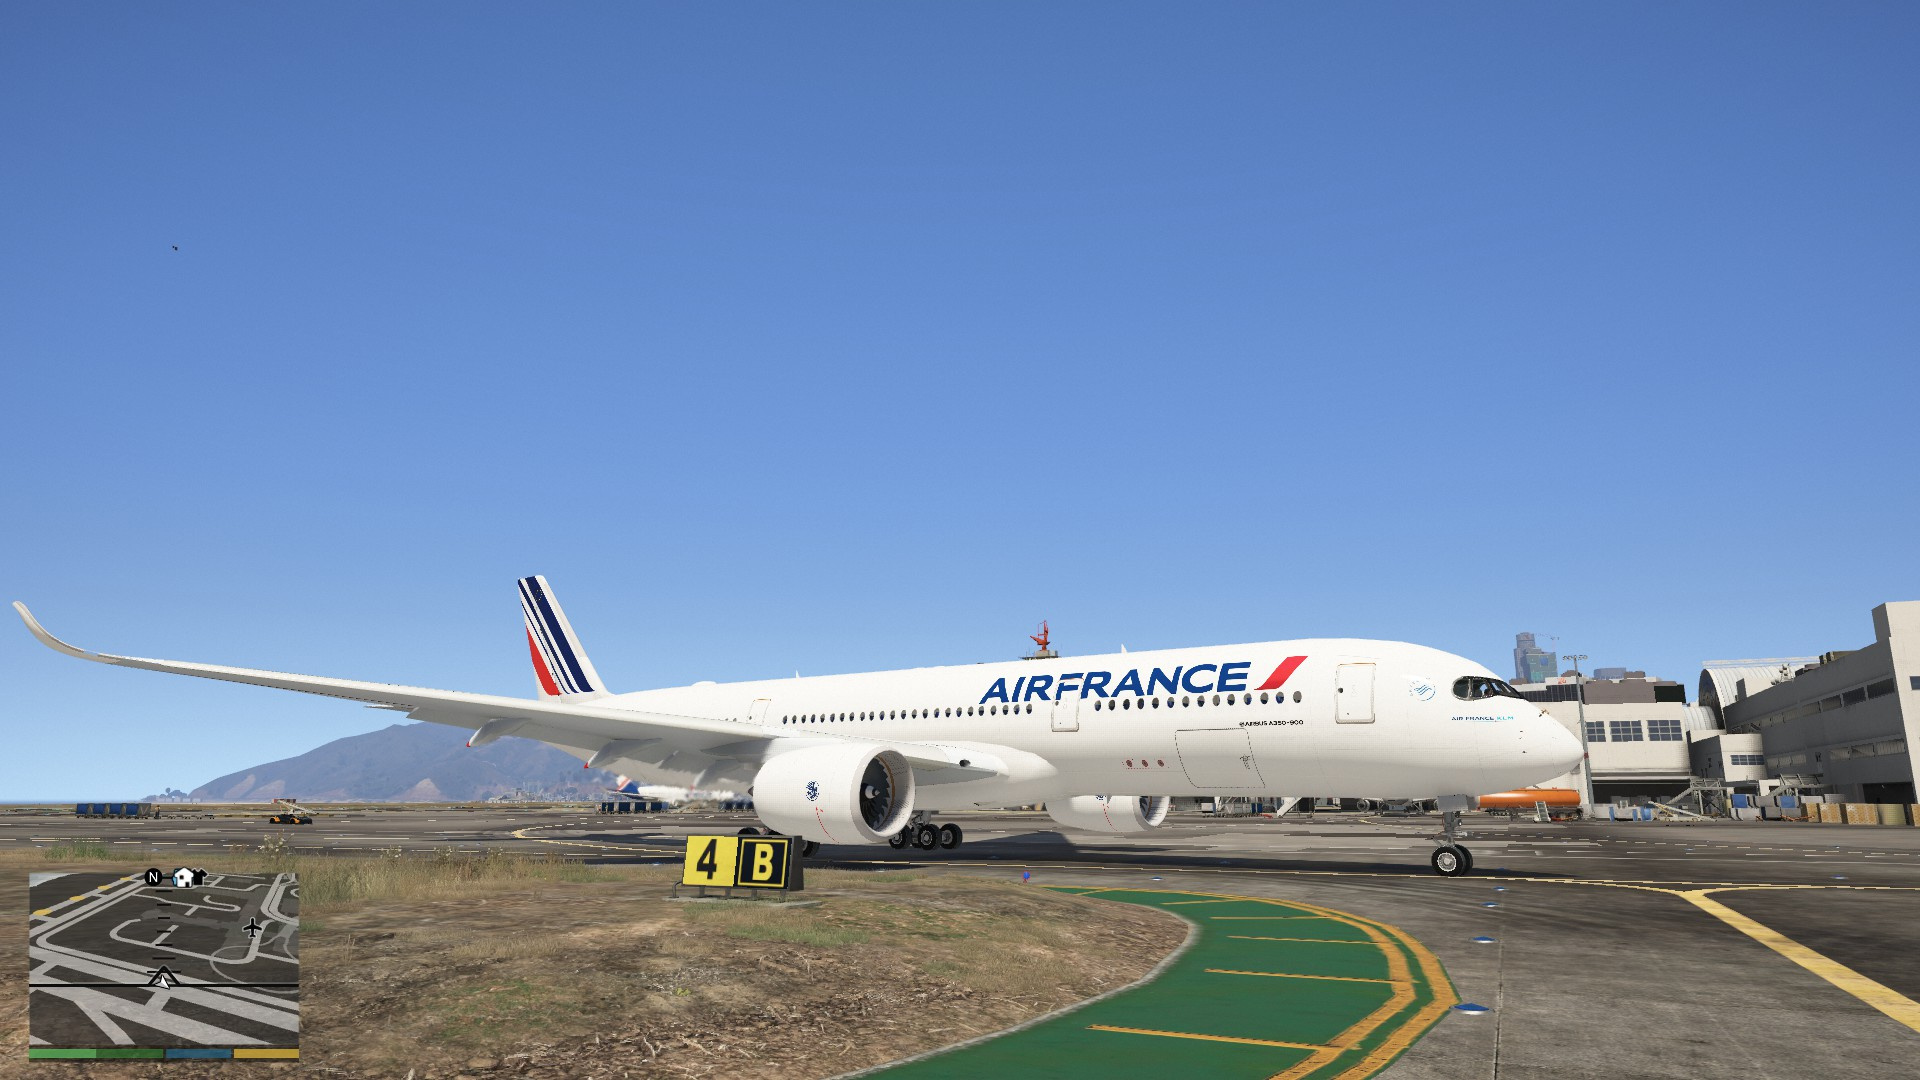 Book your flight ticket with Air France official website. Flights to Paris, France and more than worldwide destinations.